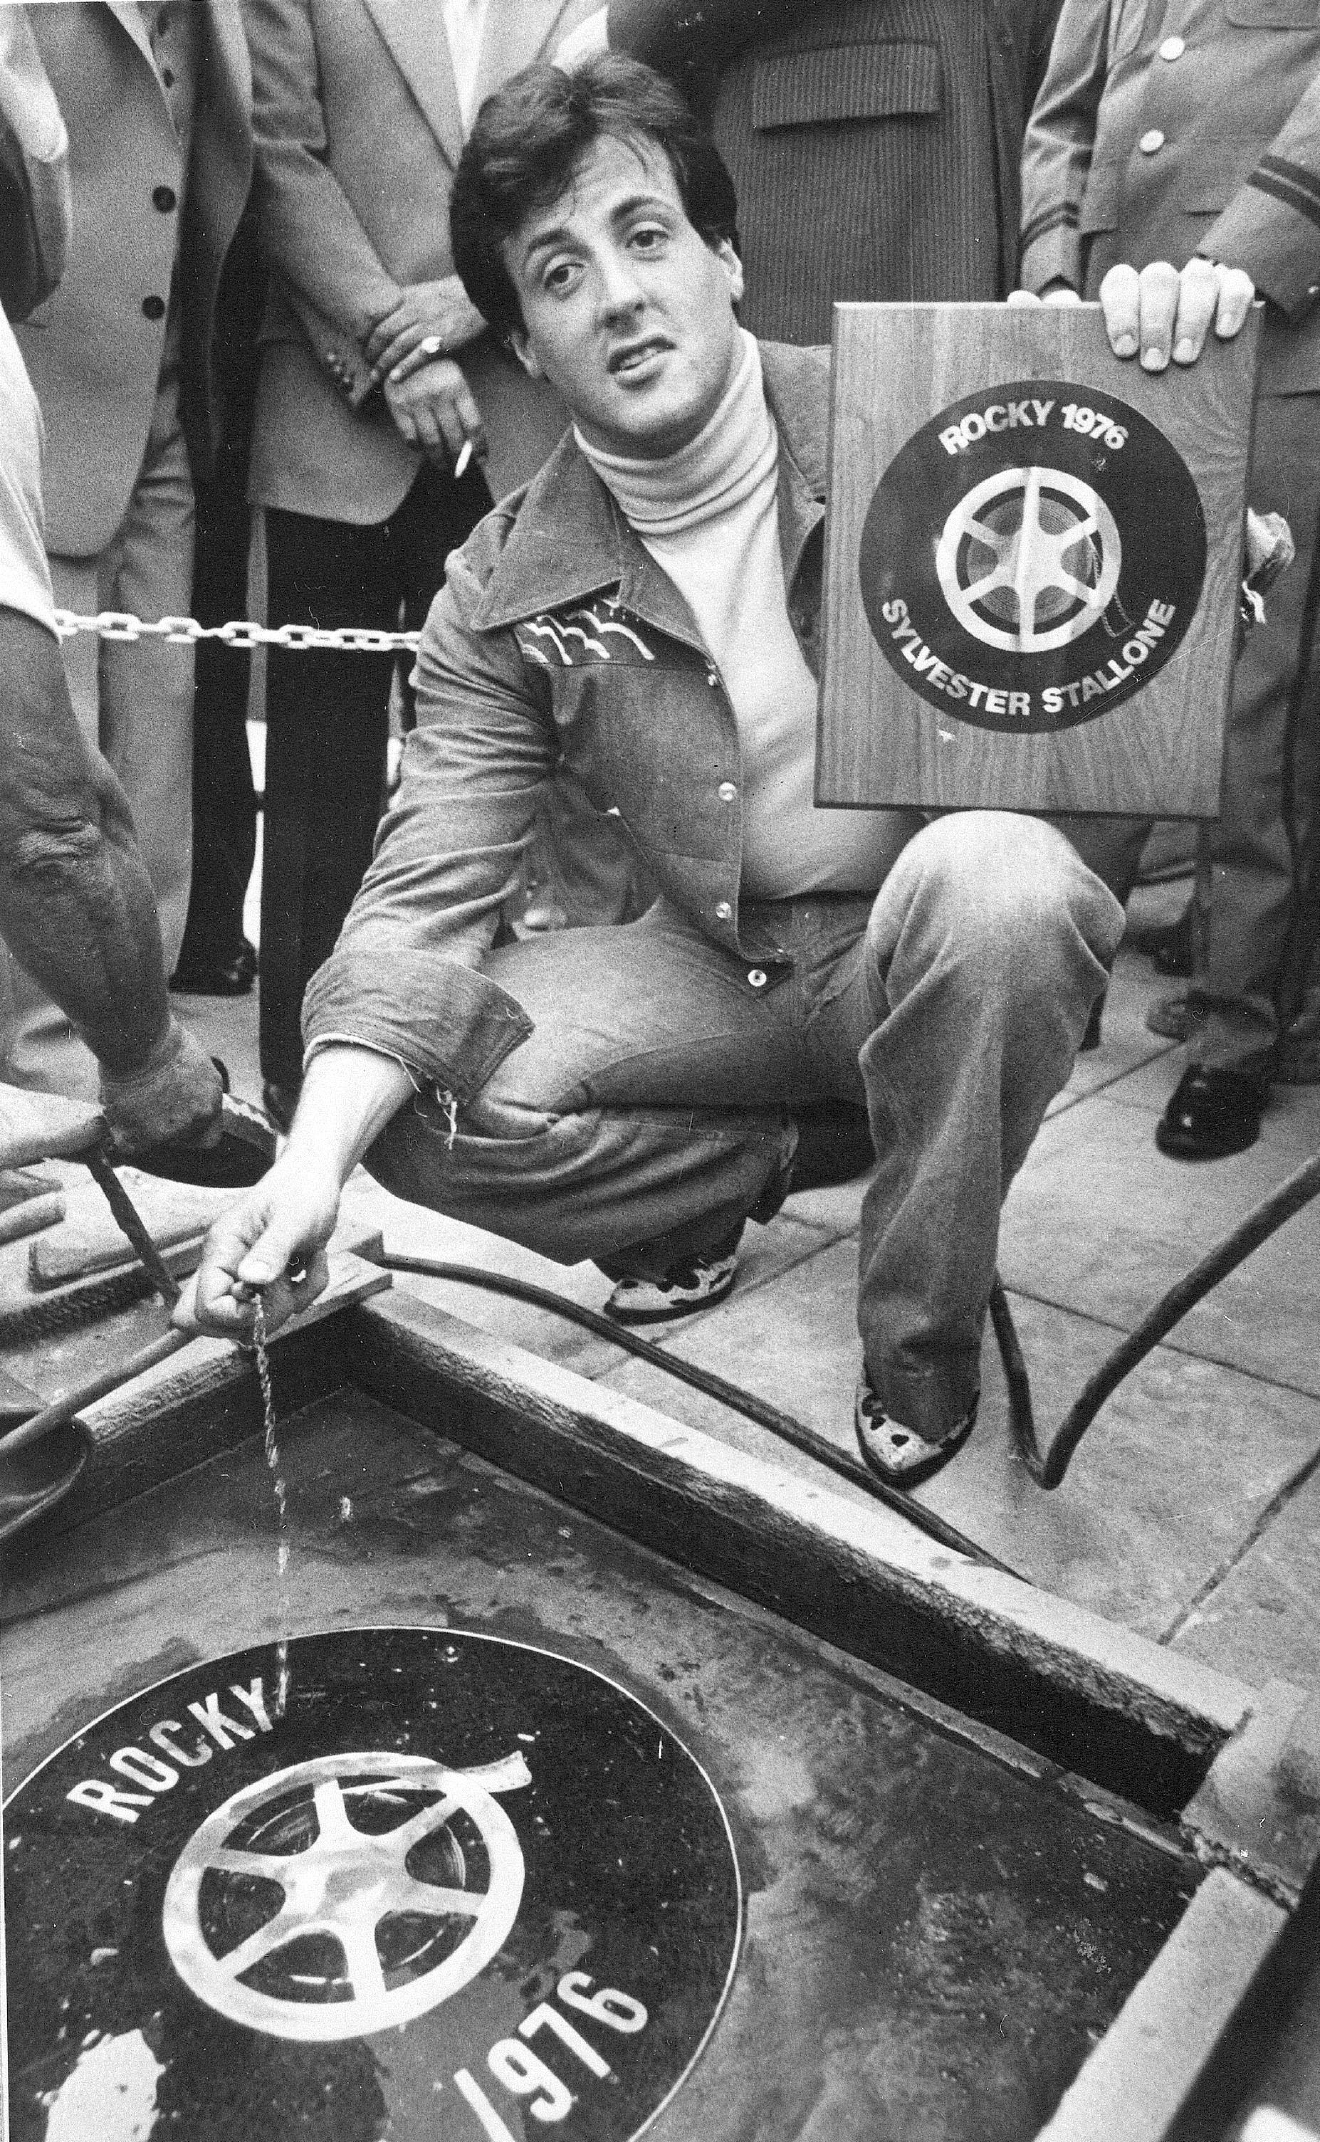 "HOLD FOR MONDAY, NOV. 21, STORY BY ERRIN HAINES WHACK – FILE – In this Sept. 22, 1977, file photo, actor and screenwriter Sylvester Stallone poses with a terrazzo inlay to be placed in the streets of the Westwood section of Los Angeles. Four decades after the Nov. 21, 1976, premiere of ""Rocky,"" the movie's reach is international, and the title character's underdog tale of determination, grit and sleepy-eyed charm still resonates with fans. (AP Photo, File)"